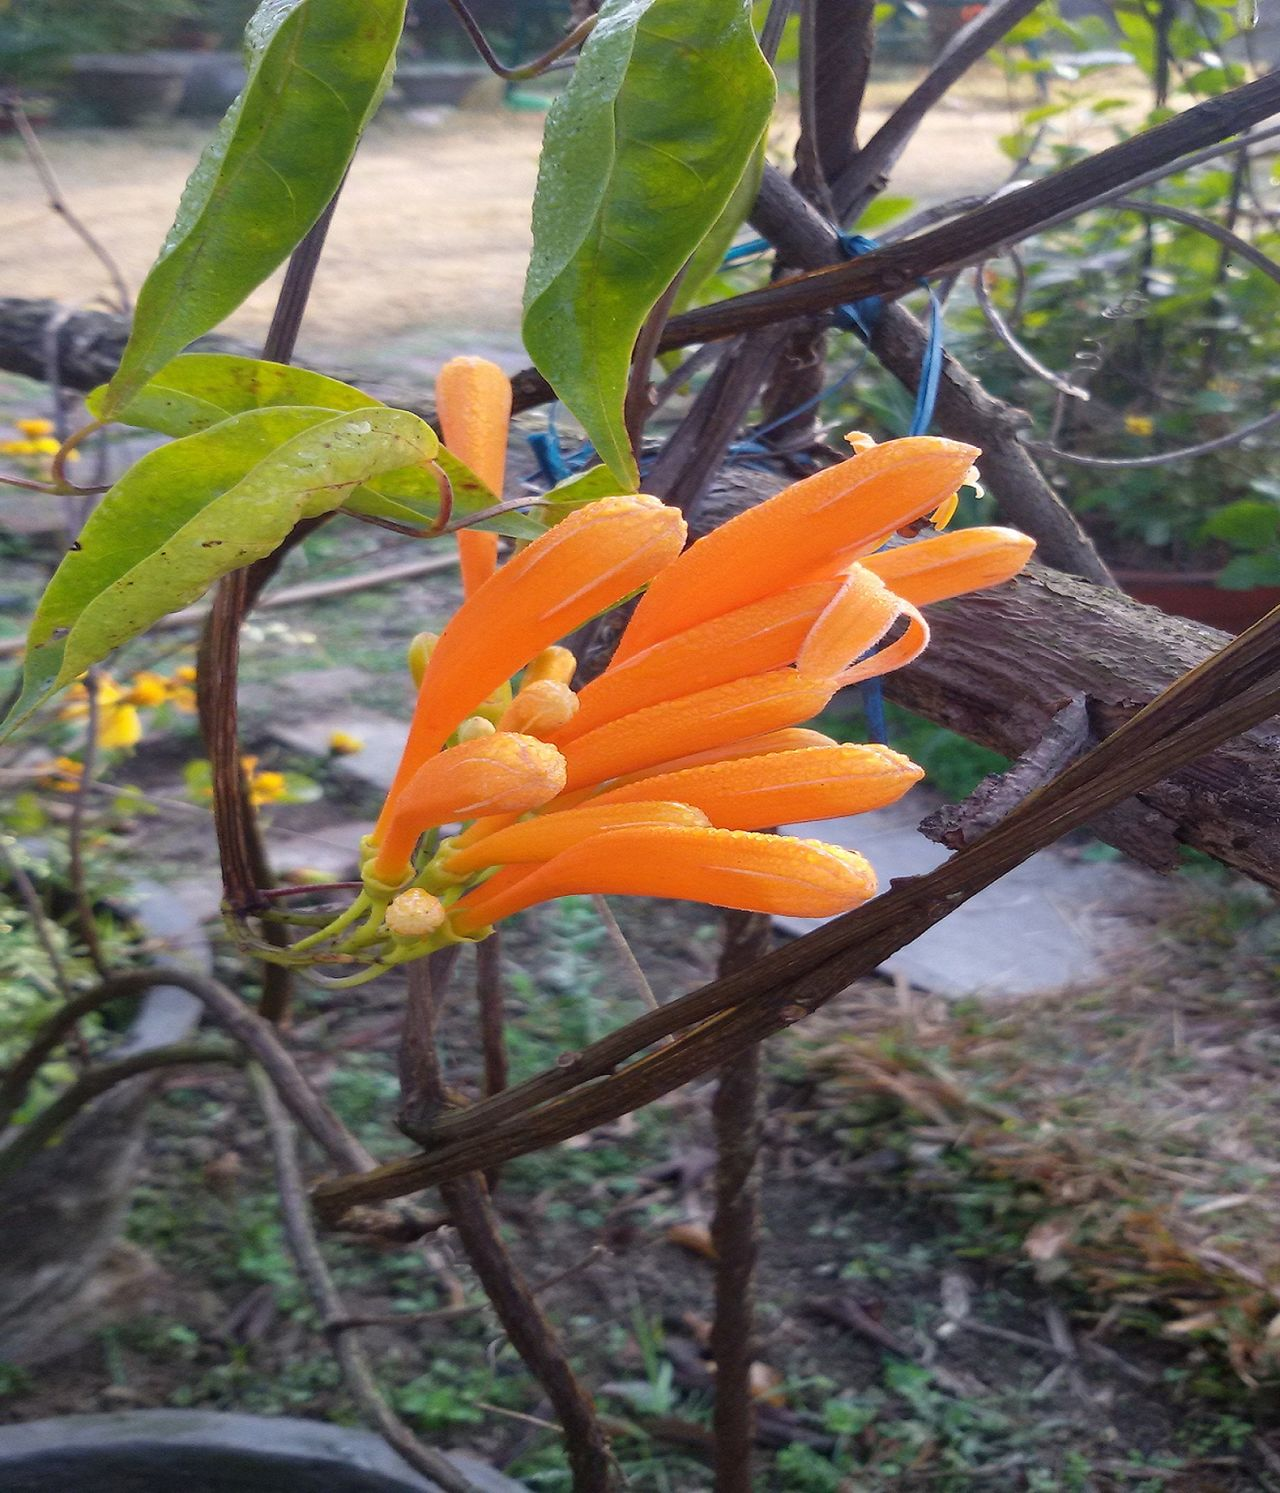 Budding Flower Bunch Of Flowers Flower Flower Beauty Flowers And Dew Dro Nature Orange Flowers Winter Flowers